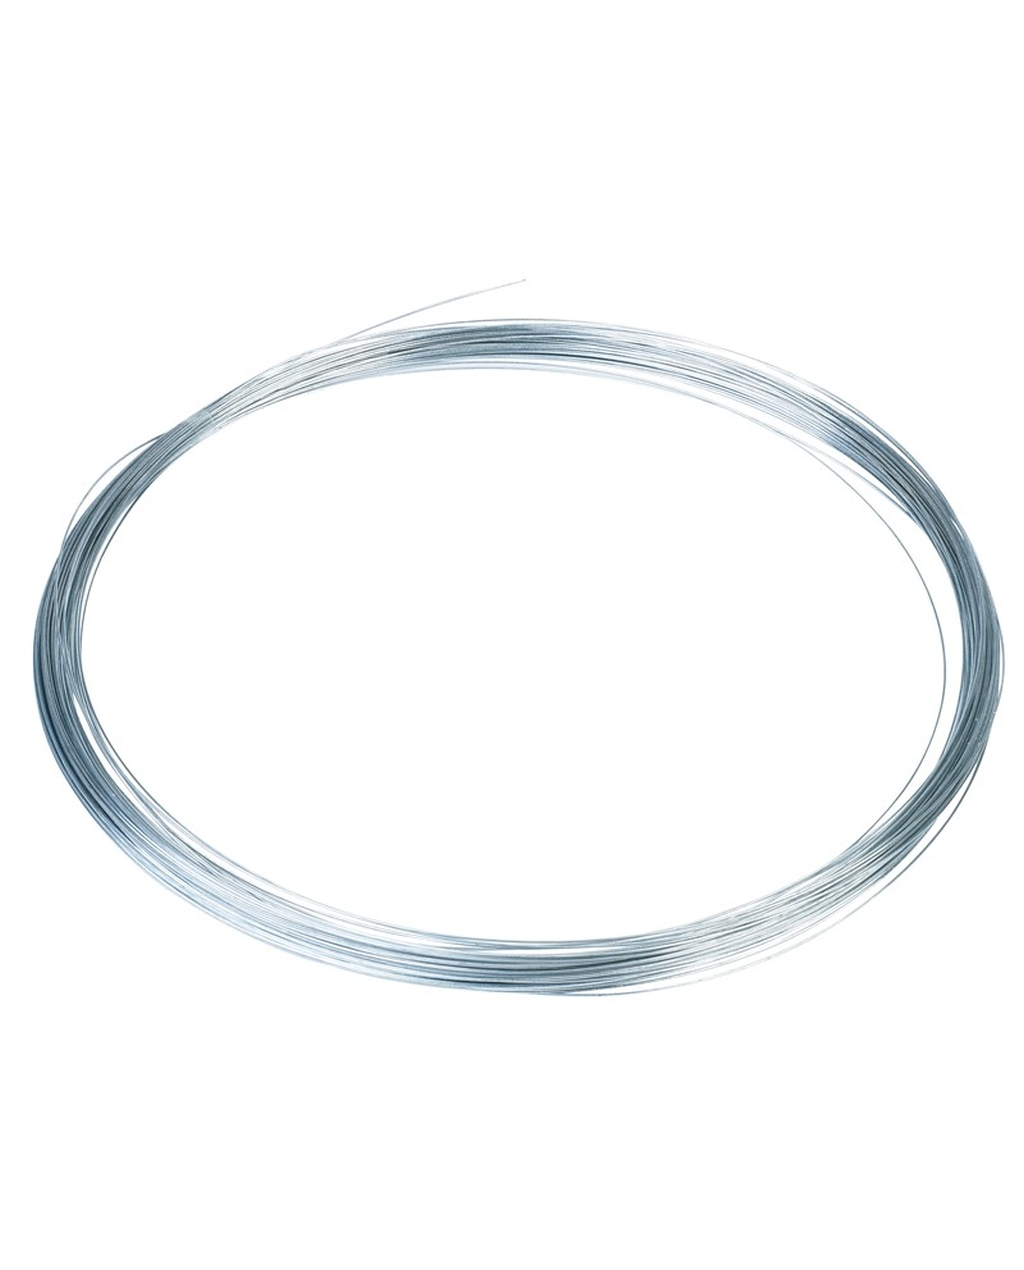 Mild Steel Soft Modelling Wire 500g